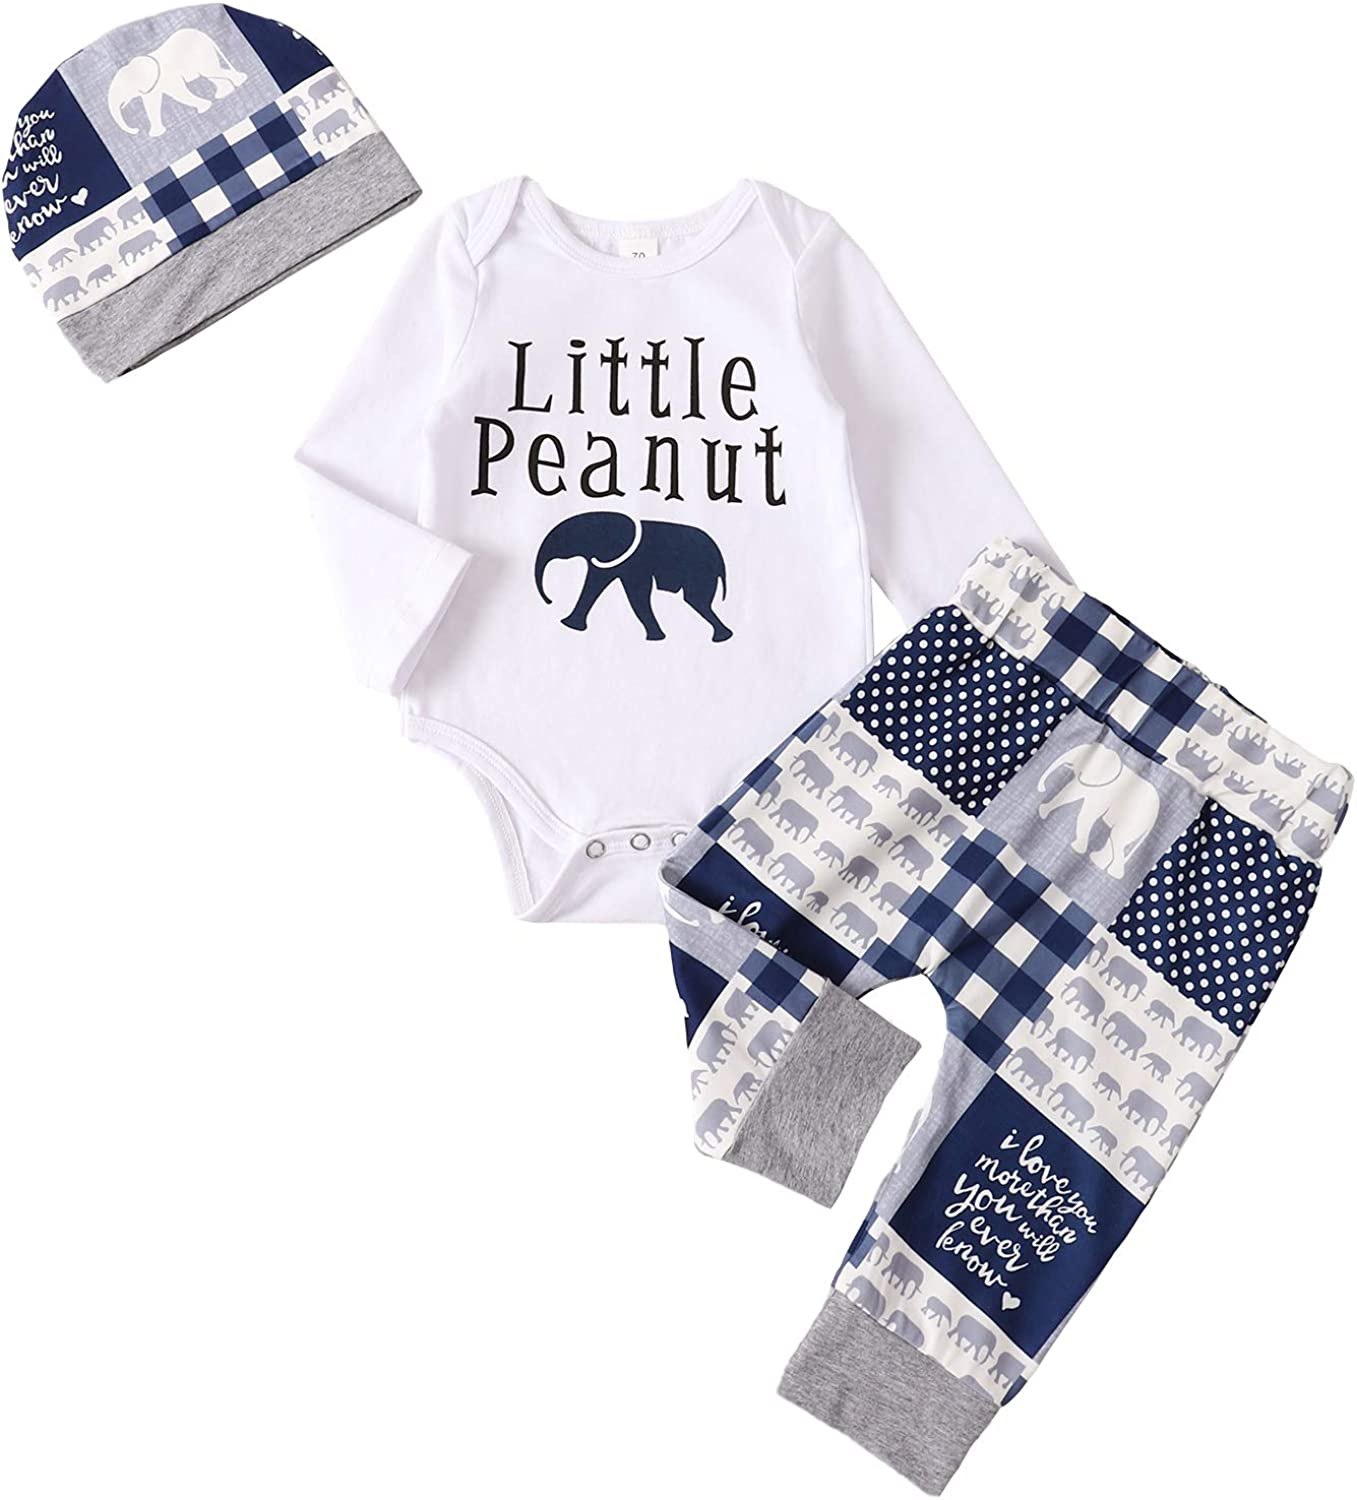 Baby Boy Clothes Newborn Outfits Boys Long Sleeve Romper Top + Print Pants + Hat Clothing Set